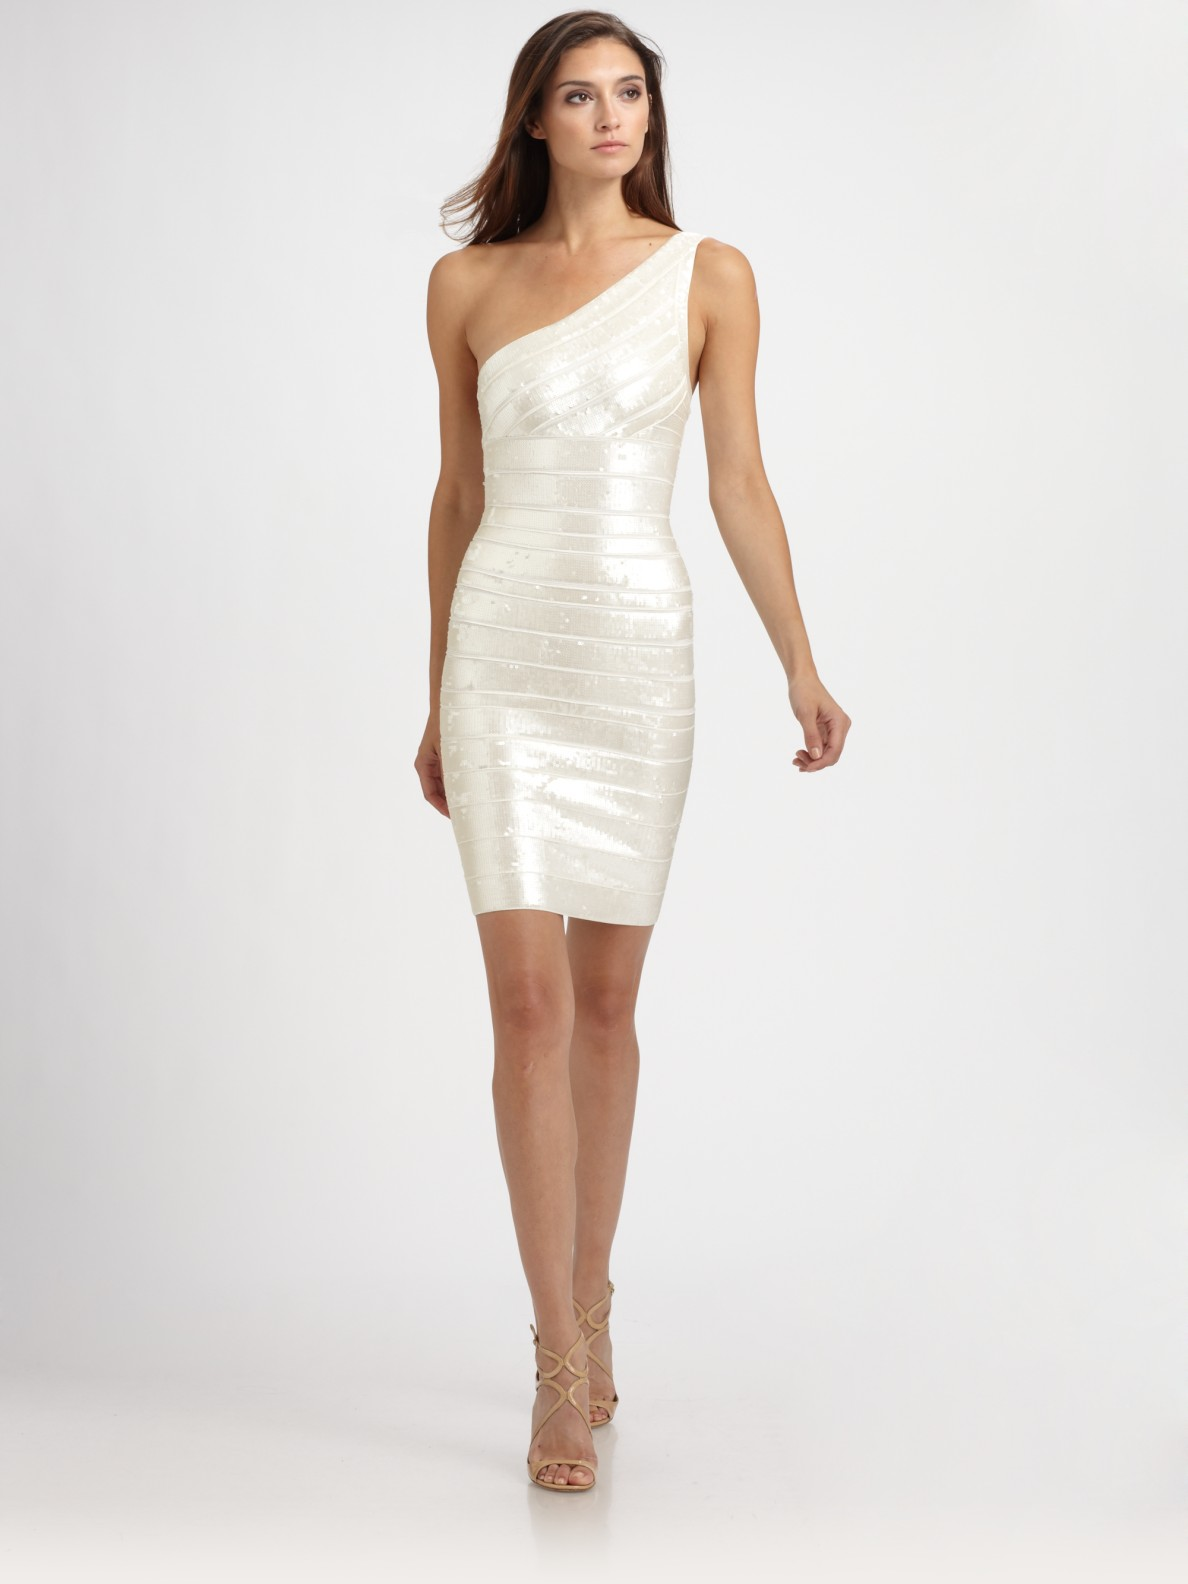 c2546667c7 White Dresses Saks At Herve Avenue Fifth Cocktail · Women's Leger Bandage  Gallery Previously Sold H8wff6